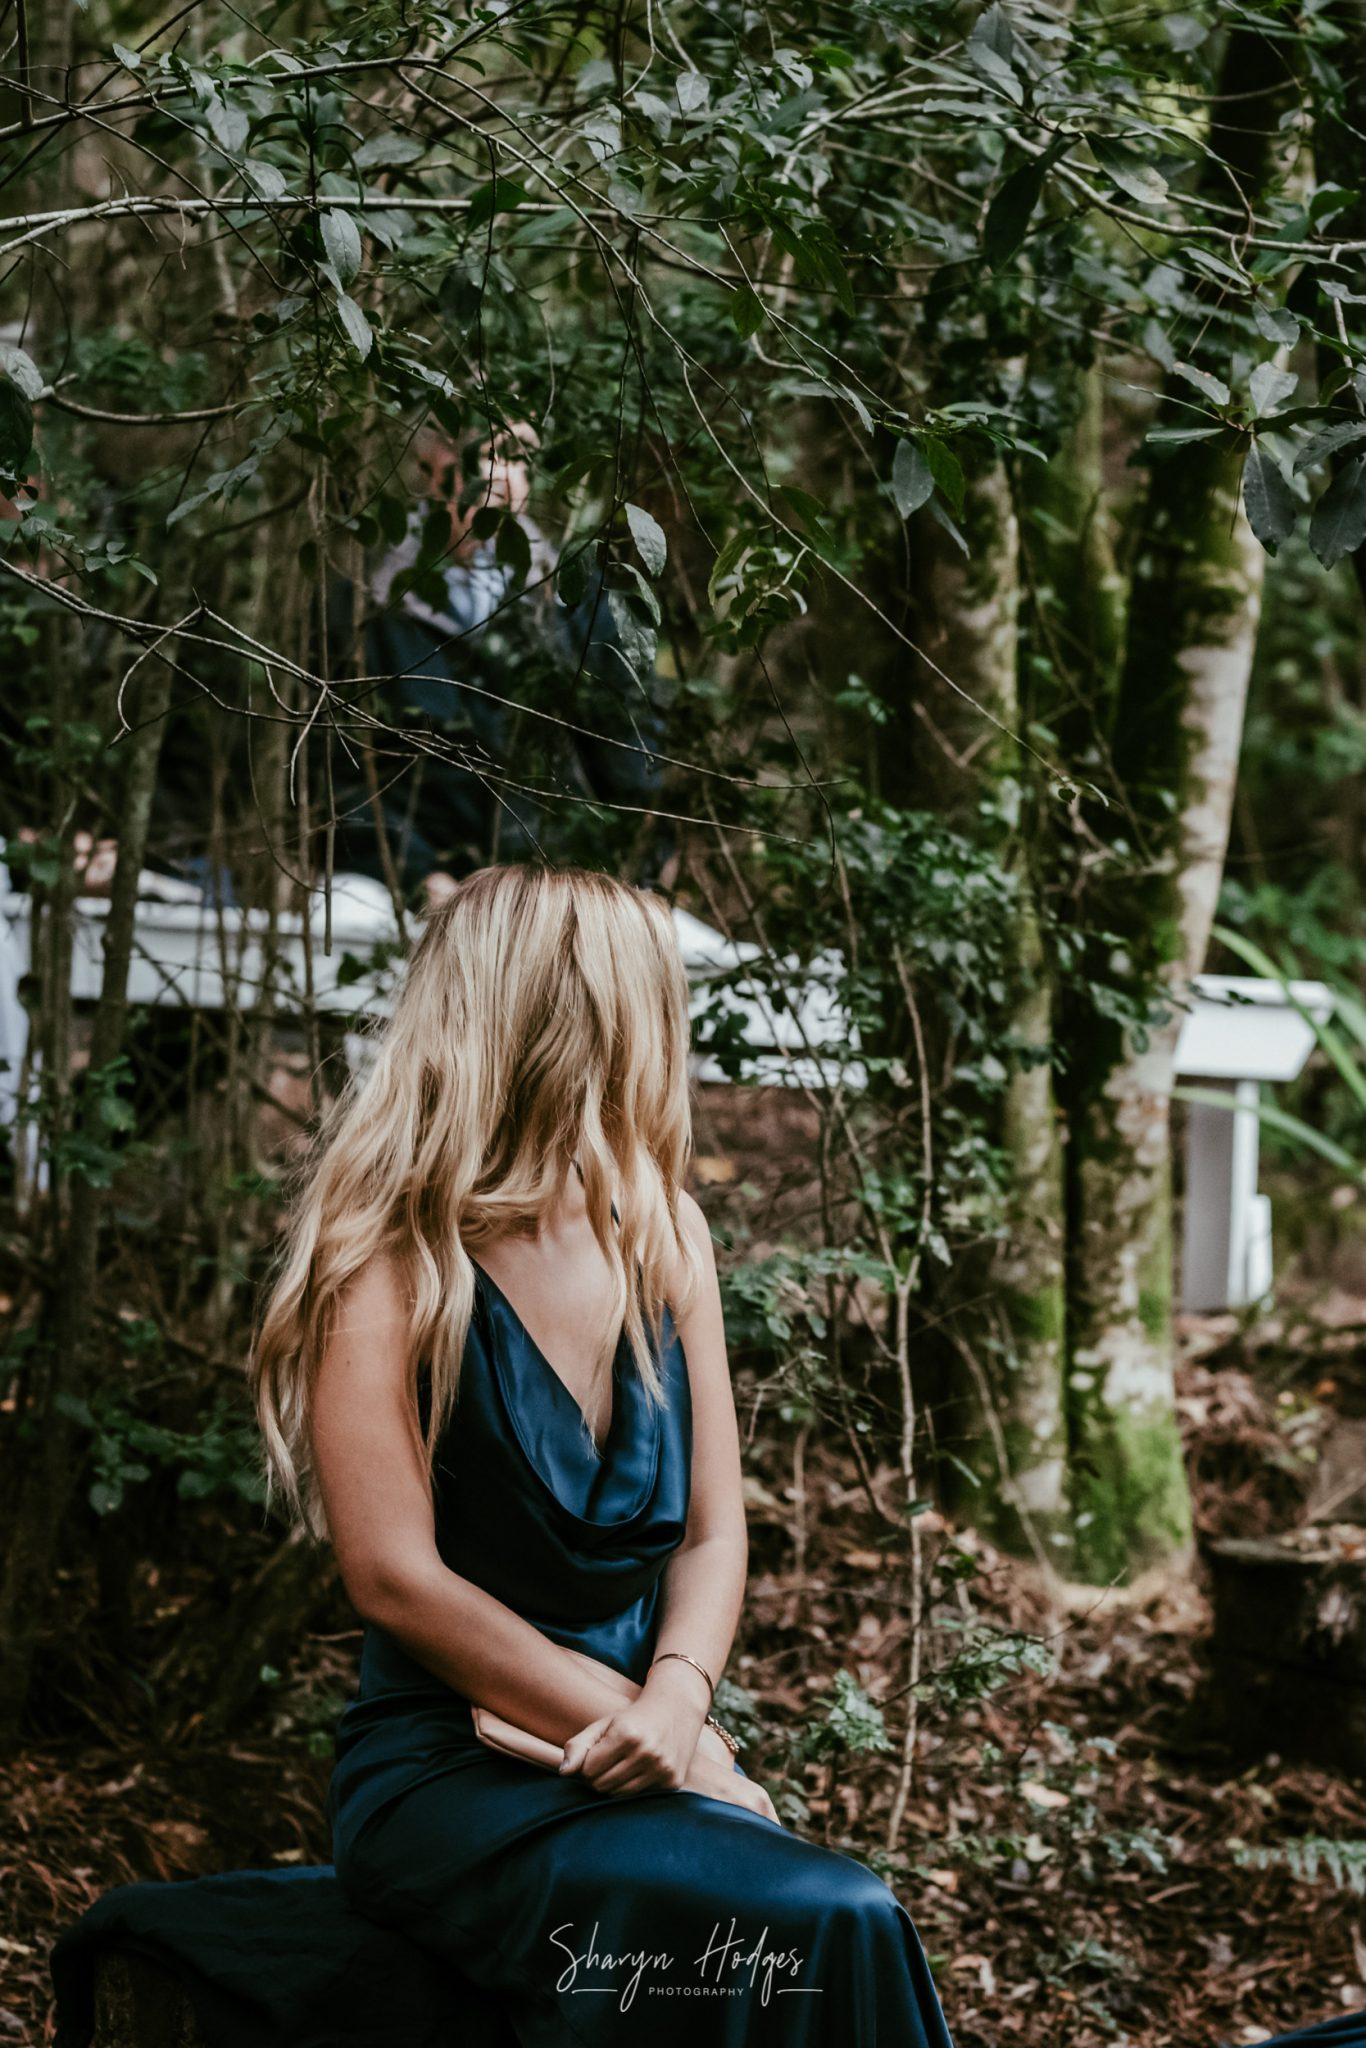 This is Louise & Hilton wedding at the vegan wedding venue, Peace Of Eden just outside of Knysna. Photographer Sharyn Hodges